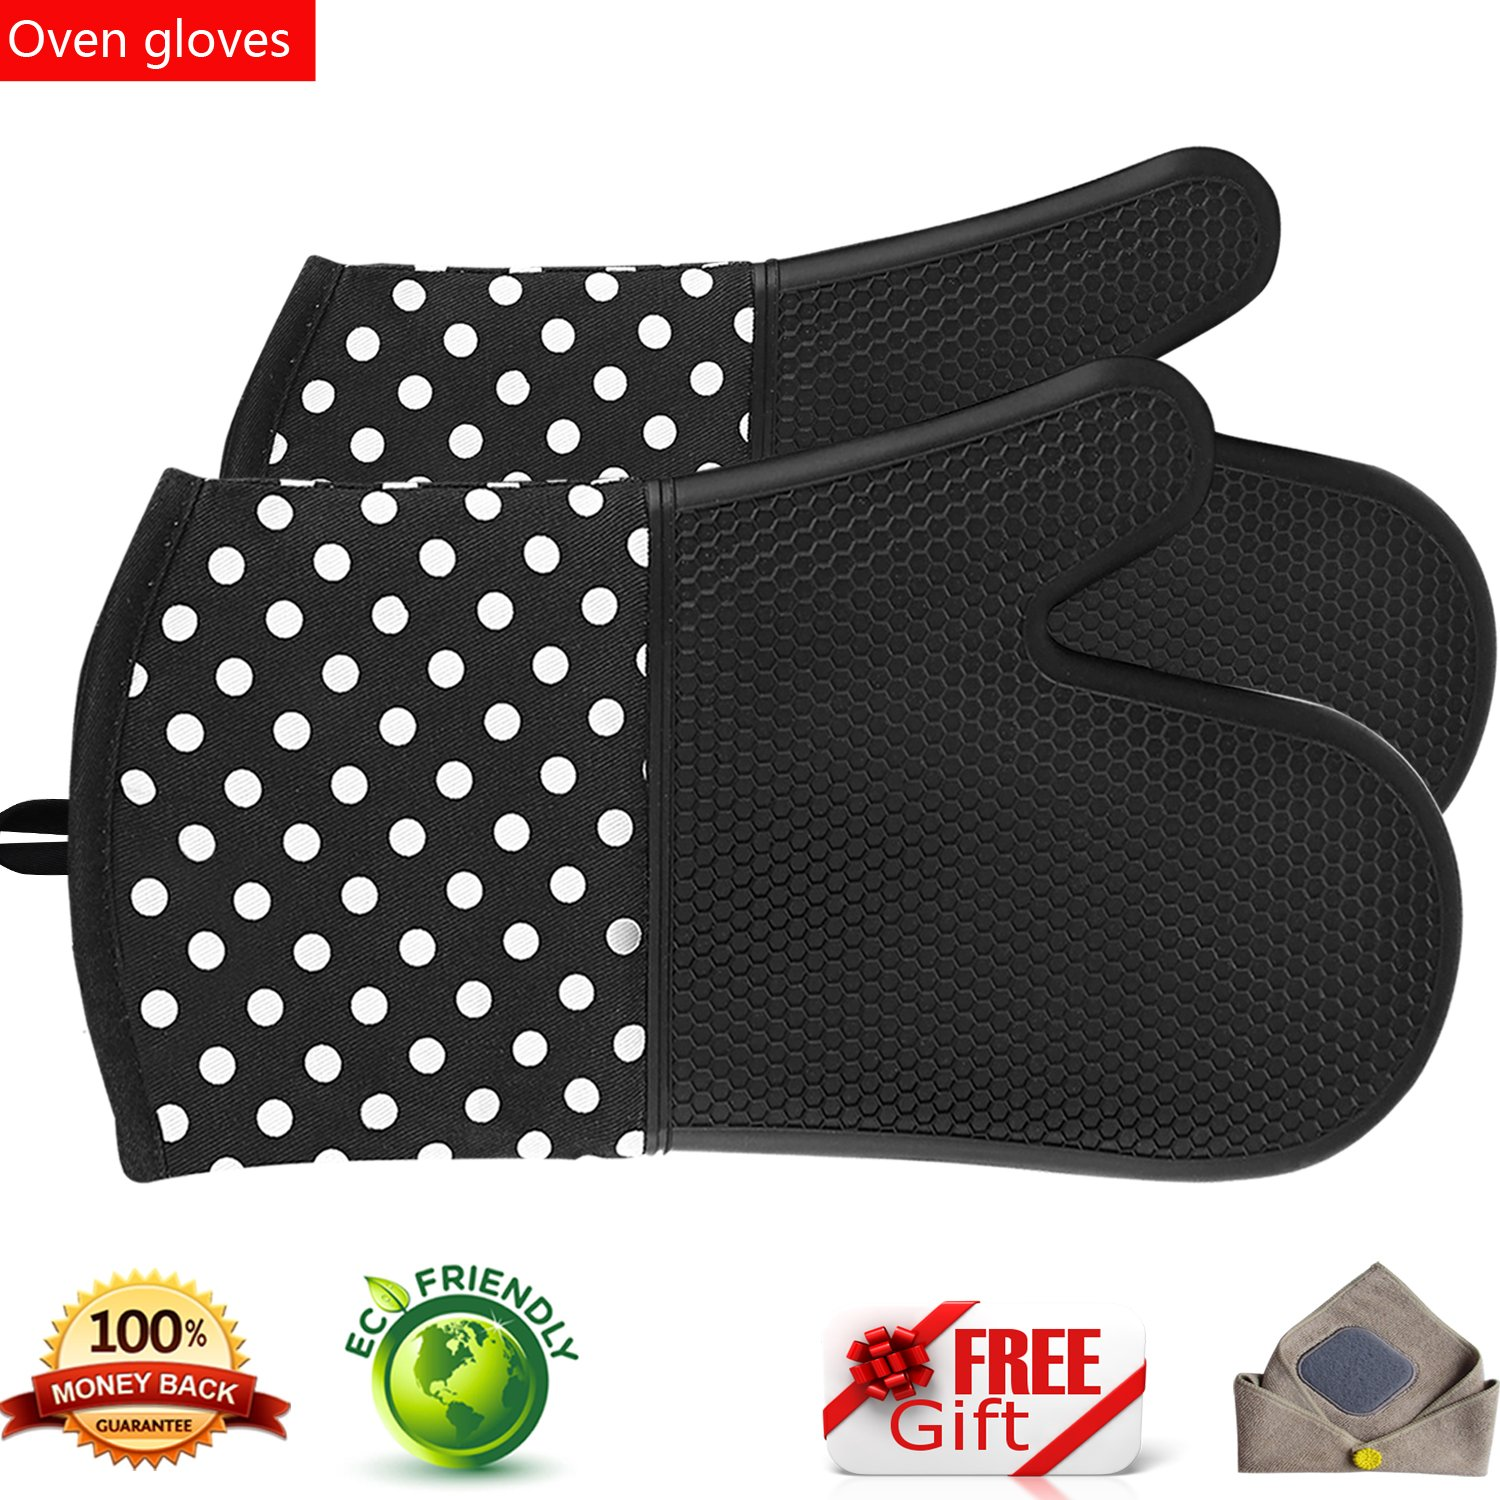 oven gloves Grill Silicone Oven Mitt Gloves Extremely Heat Resistant BBQ Gloves 1Pair, a Blue sky UK